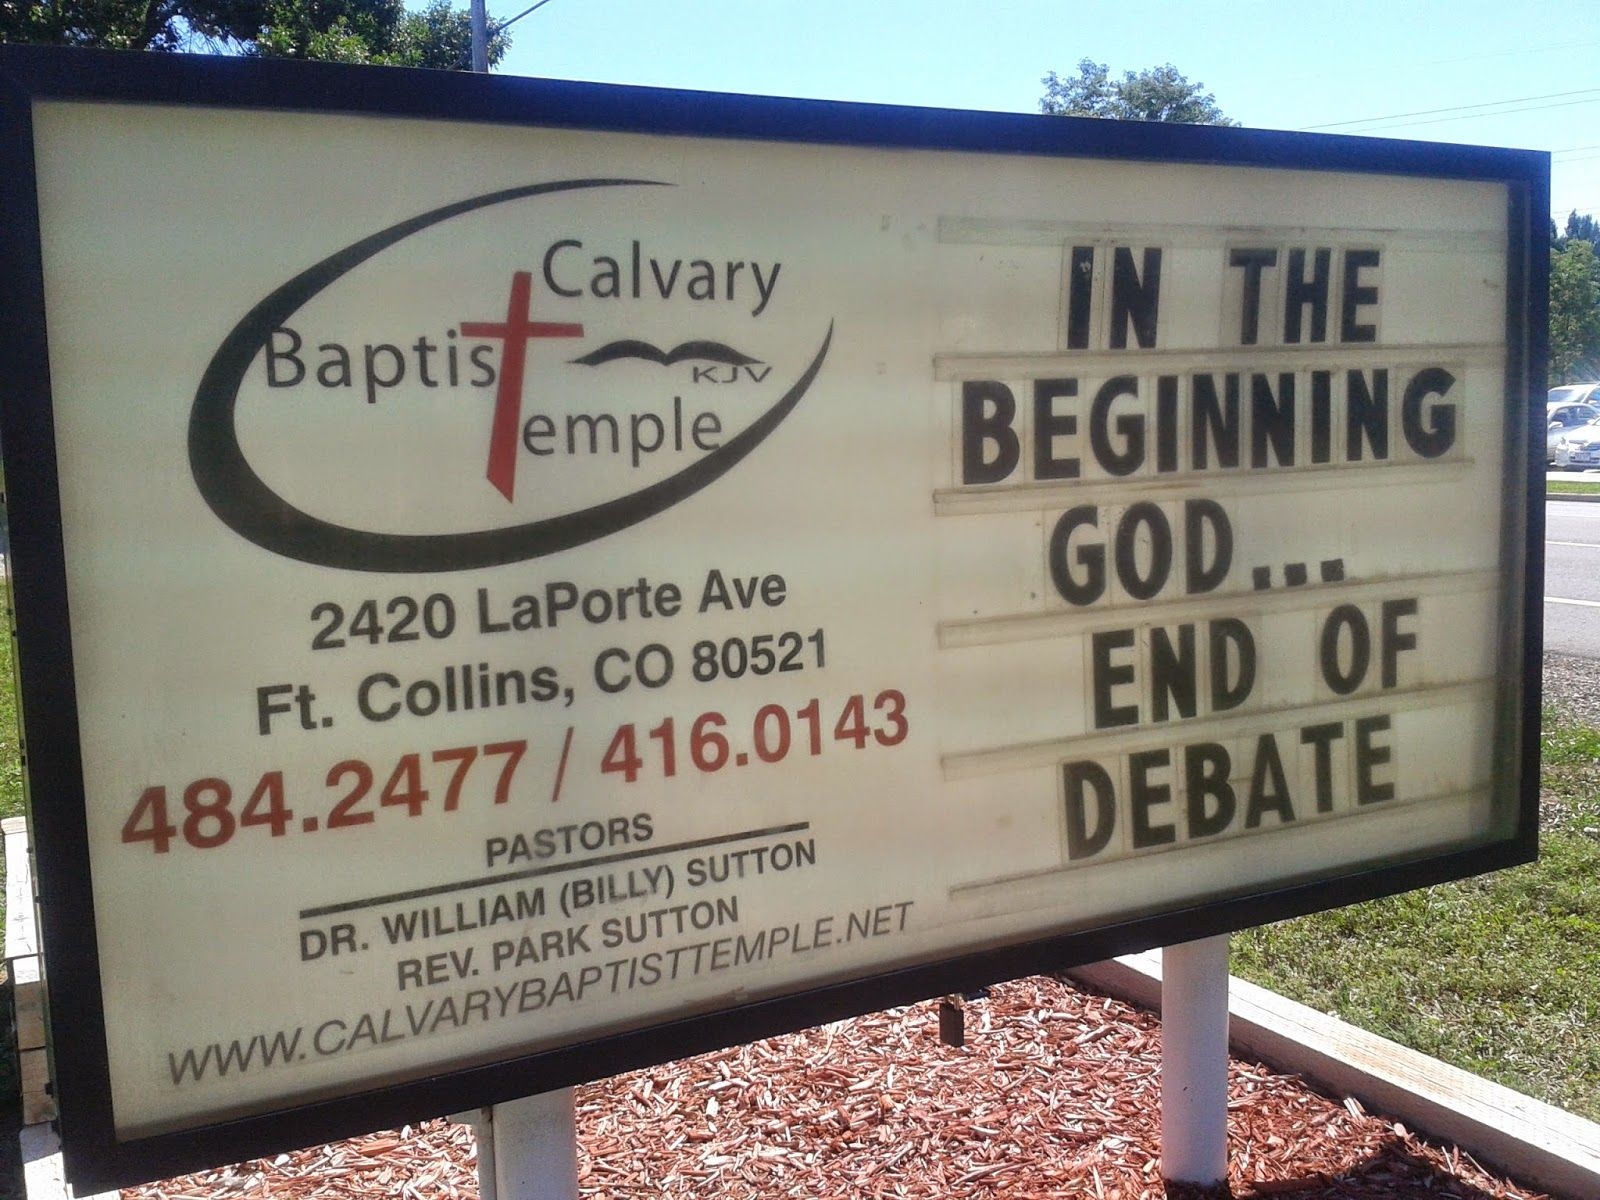 Church Sign Quotes Amazing In The Beginning Goddebate Over  Church Sign Board Message